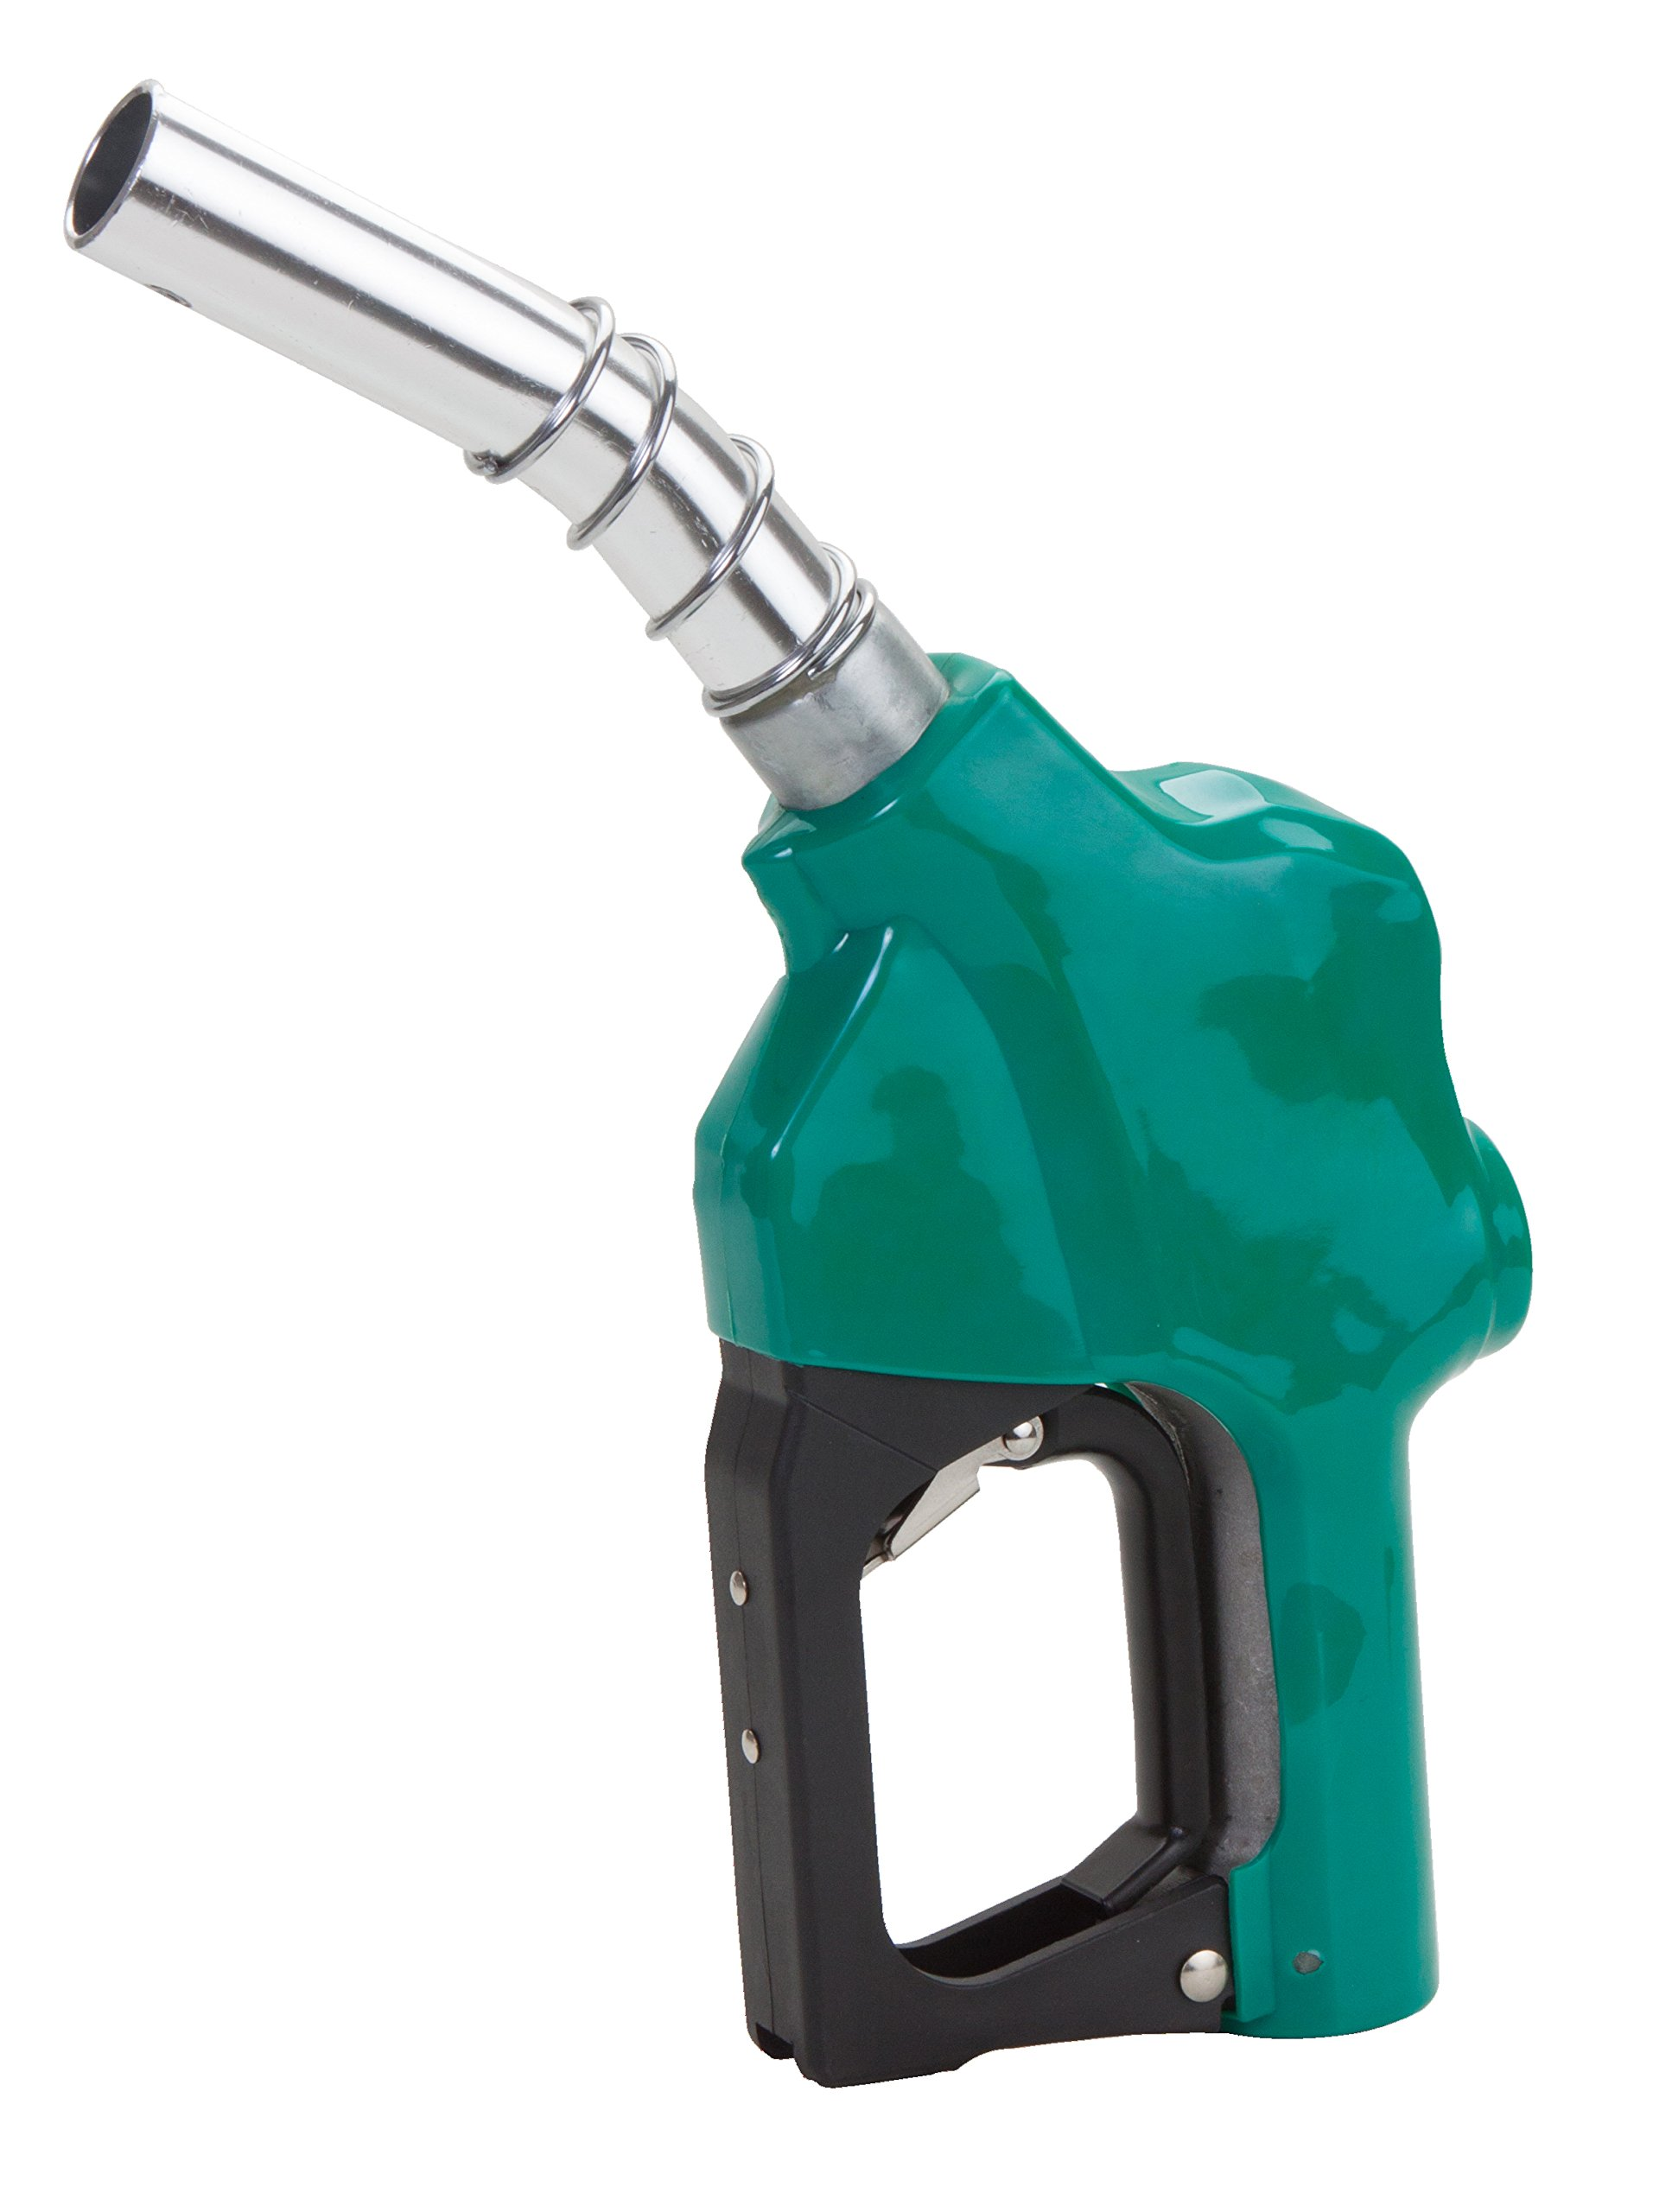 GROZ 1-inch NPT UL Listed Automatic Fuel Nozzle | 29 GPM | Curved Spout | Max Pressure 50 PSI | Green (45566)